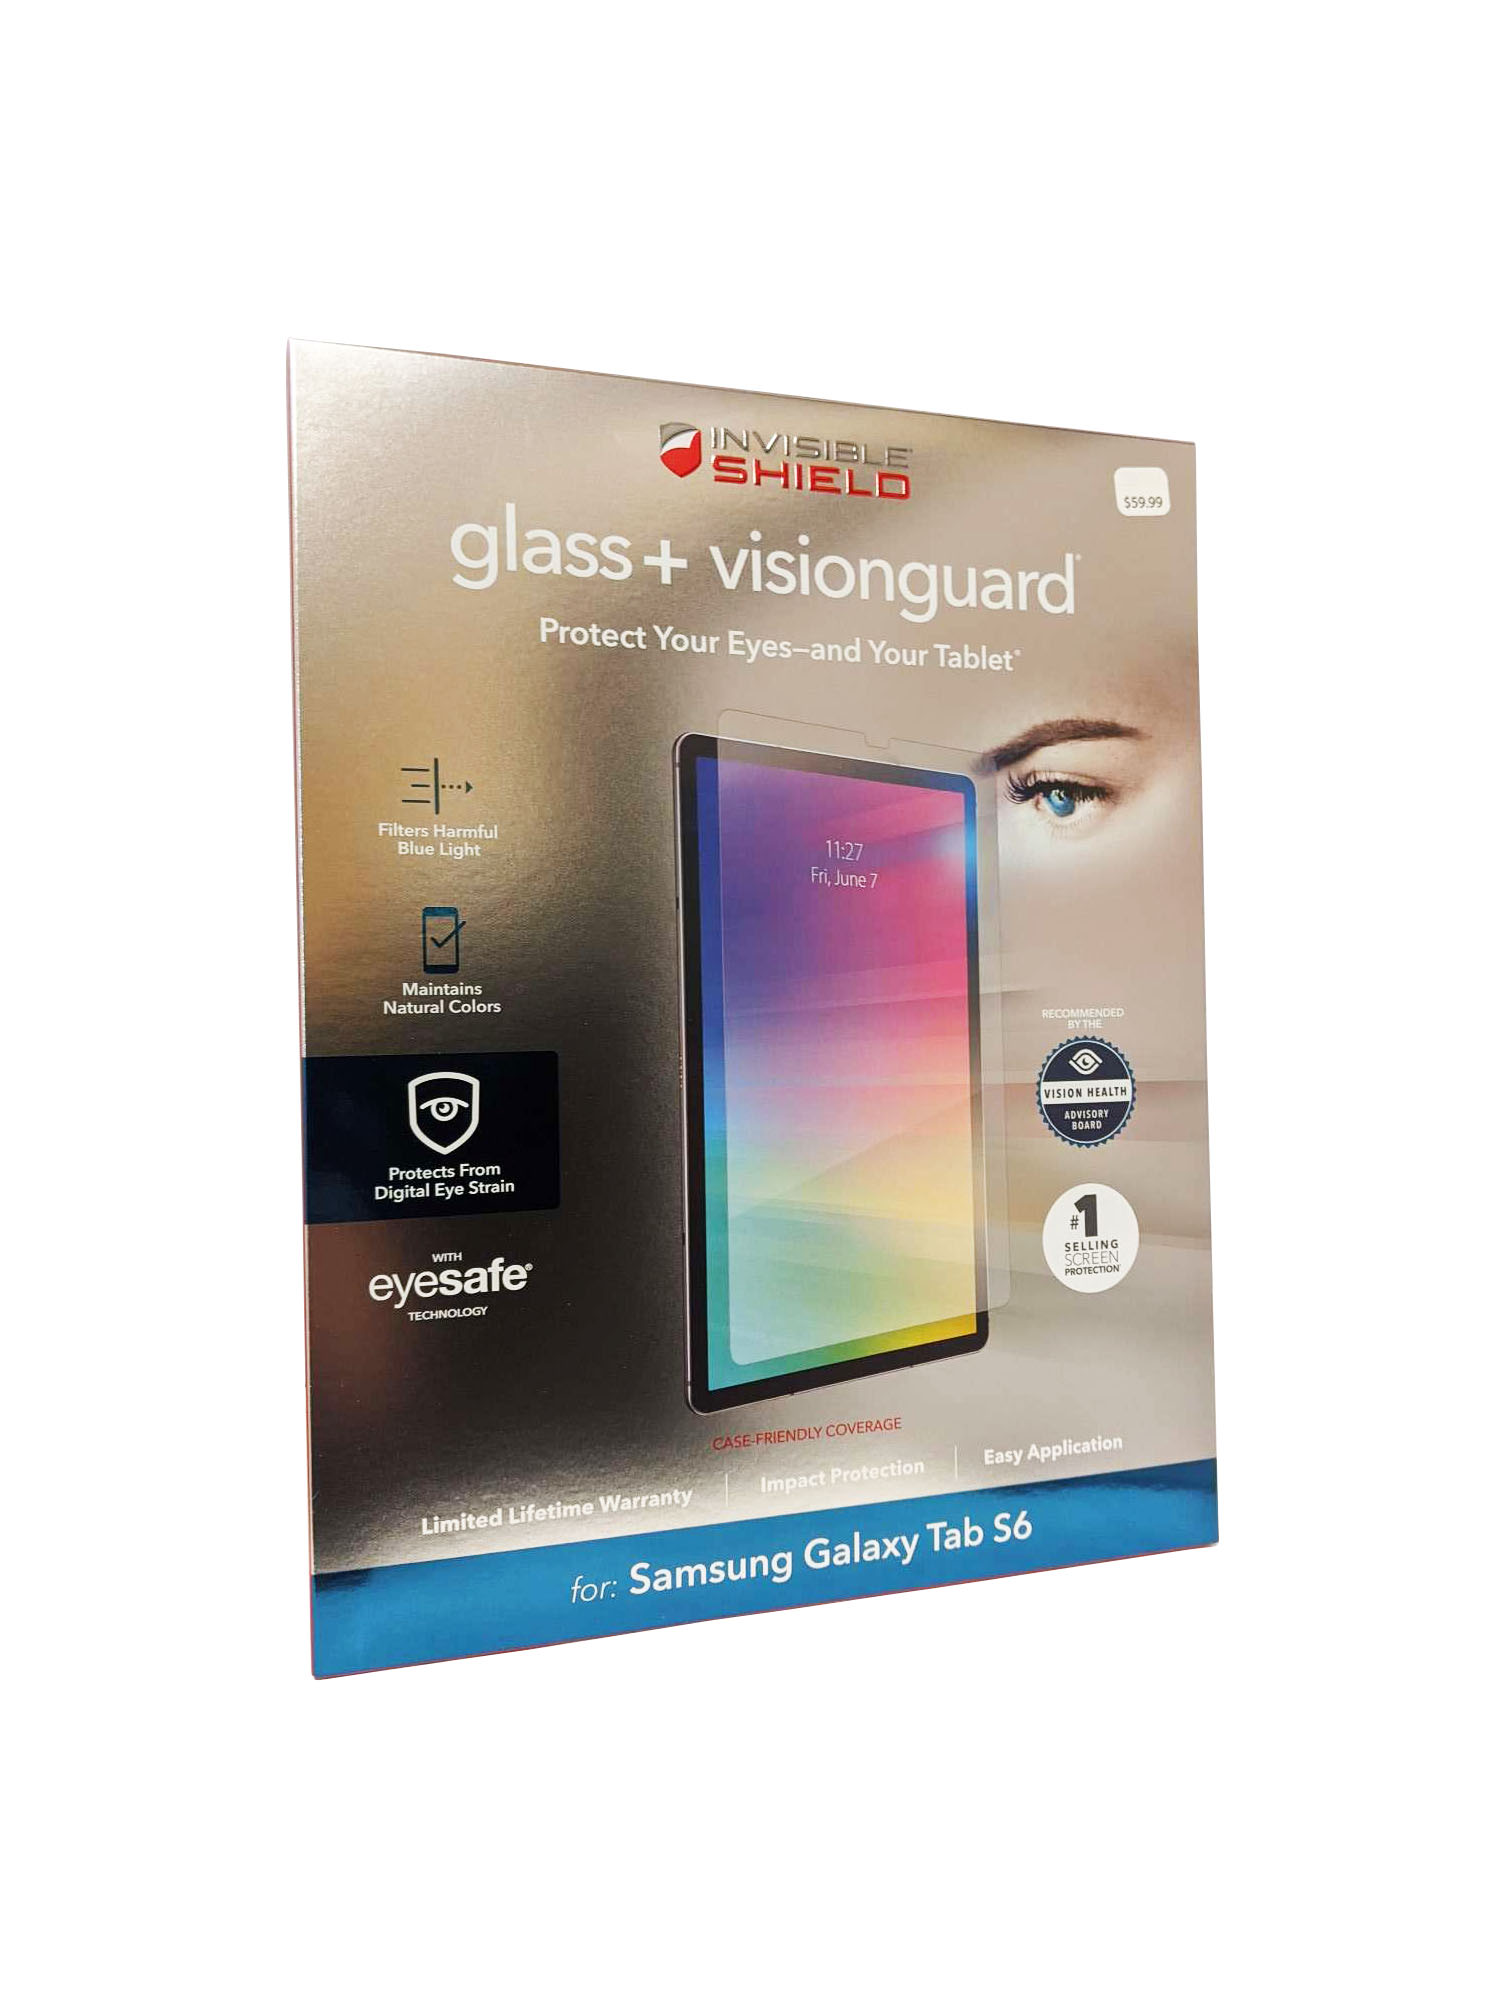 ZAGG for Galaxy Tab S6 InvisibleShield Tempered Glass+ with VisionGuard - Clear